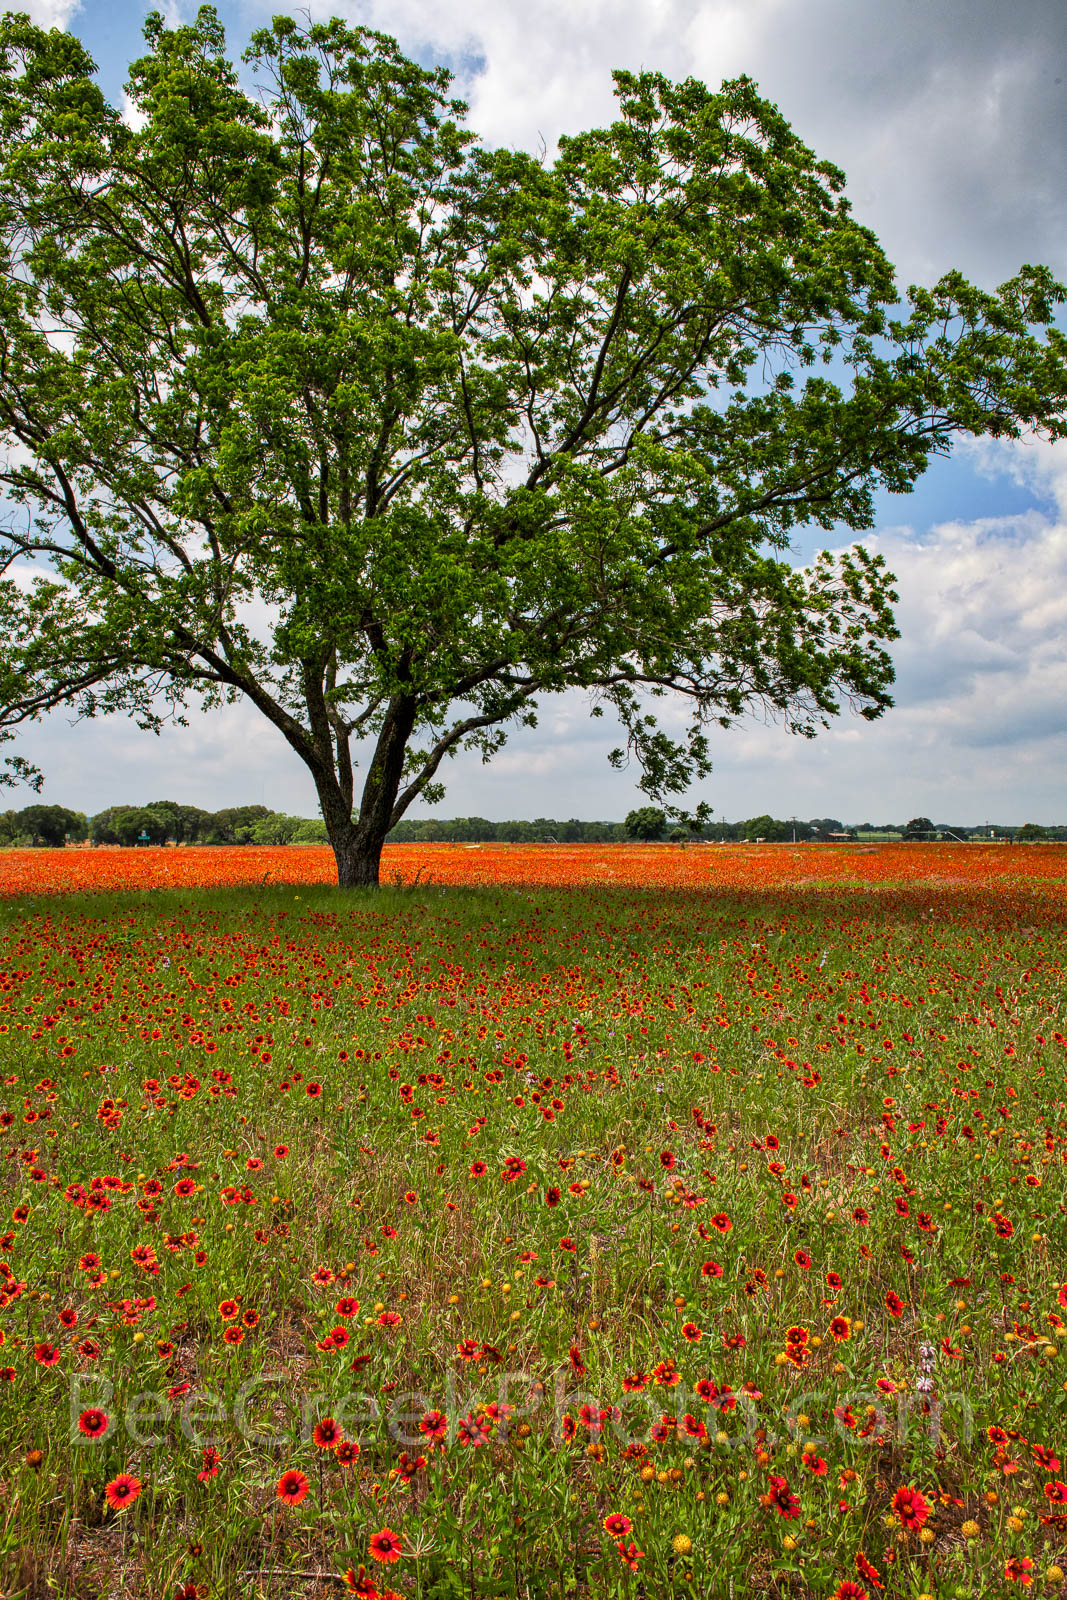 Texas, wildflower, landscape, vertical, indian blanket, firewheels, road trip, field of wildflowers, texas hill country, tree, annual, flowering plant, blooms, red flower, texas hill country wildflowe, photo